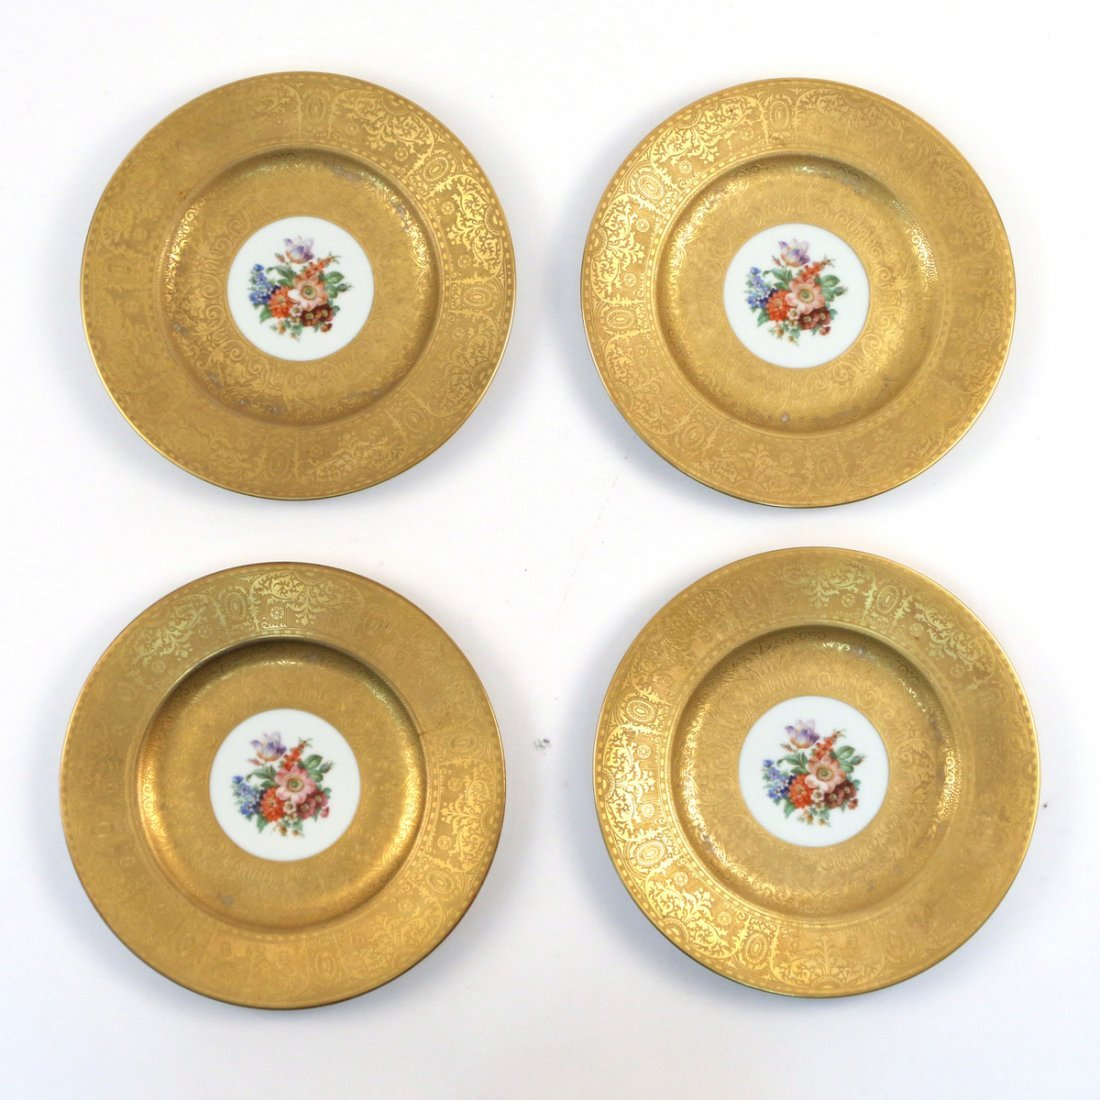 (12pc) ROYAL BAVARIAN SERVICE PLATES - 6